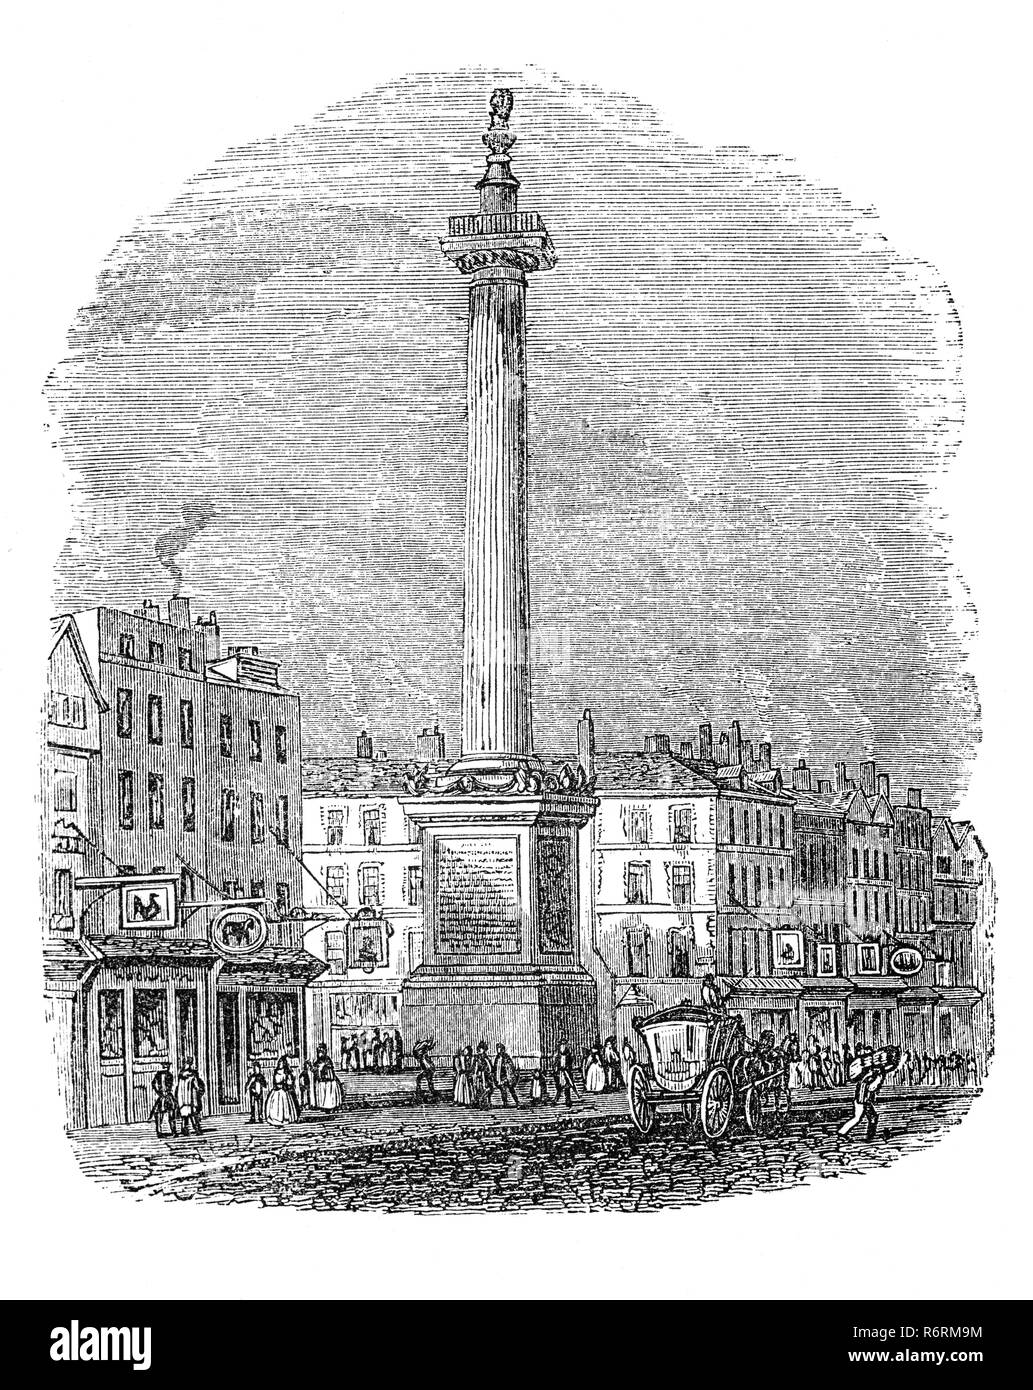 View of the Monument Erected in Memory of the Dreadful Fire in the Year 1666 in Fish Street Hill, a bustling London street on the north side of London Bridge. It was commissioned from the architect Sir Christopher Wren, and built in the wake of the Great Fire of London. The huge pillar, a fluted Doric column, is topped by a flaming urn. It stands 202 feet tall and is located about 202 feet from the site of the baker's shop in Pudding Lane, where the fire began. The Monument was unveiled in 1677 as a reminder of the dreadful fire and a symbol of the city's rebirth. - Stock Image